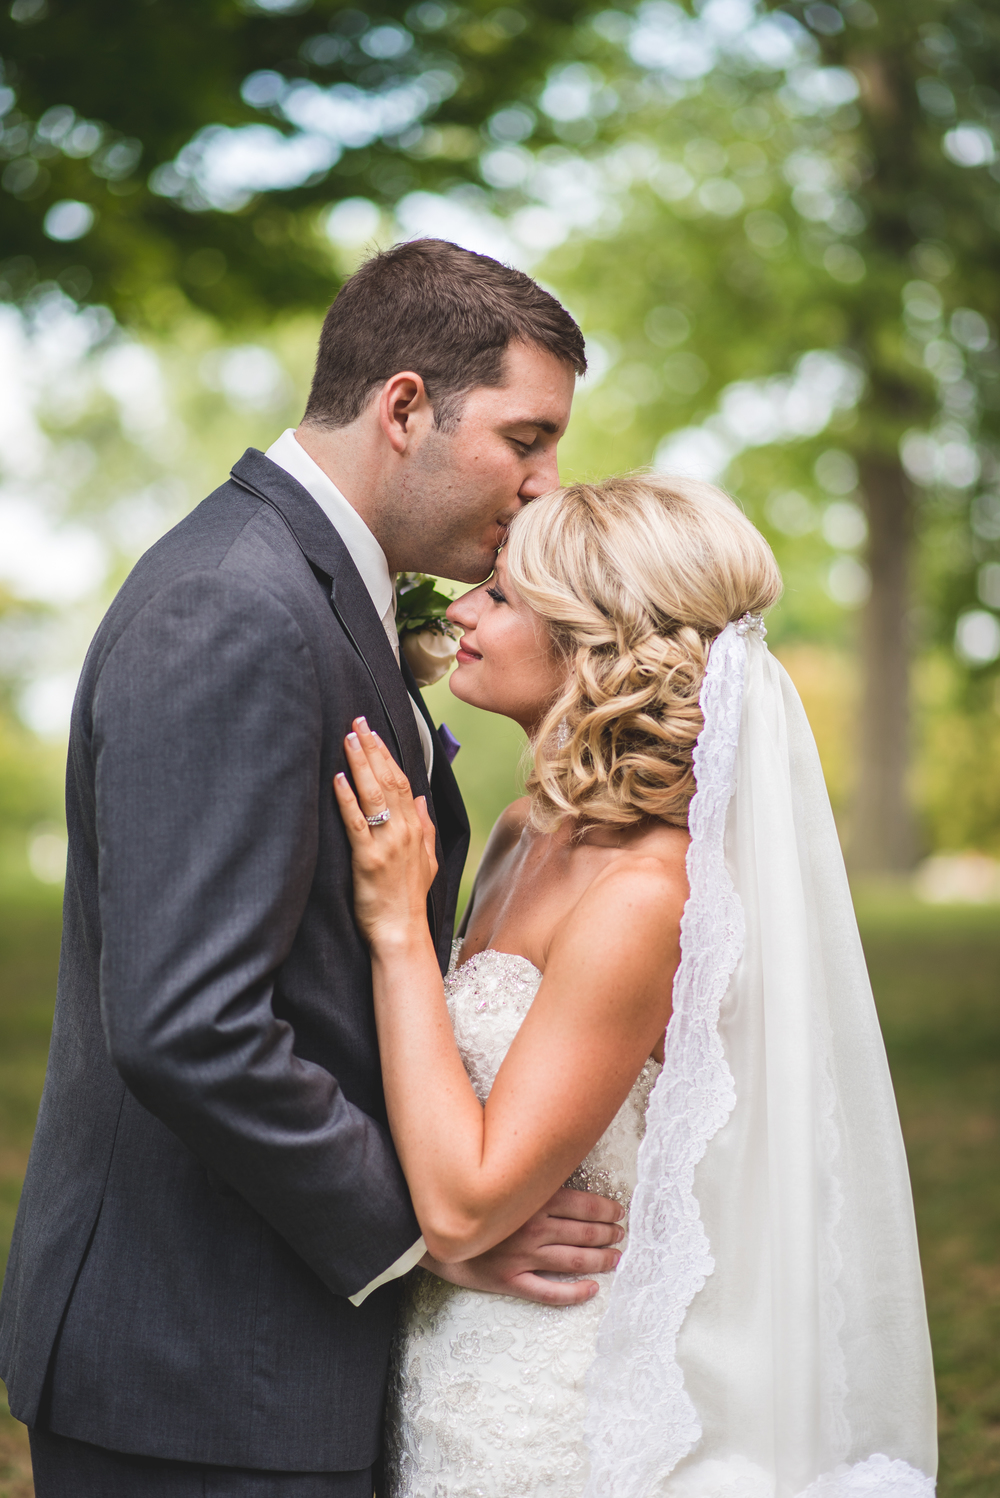 Wedding at The Radisson in Eastlake Ohio | Alysa + Mike